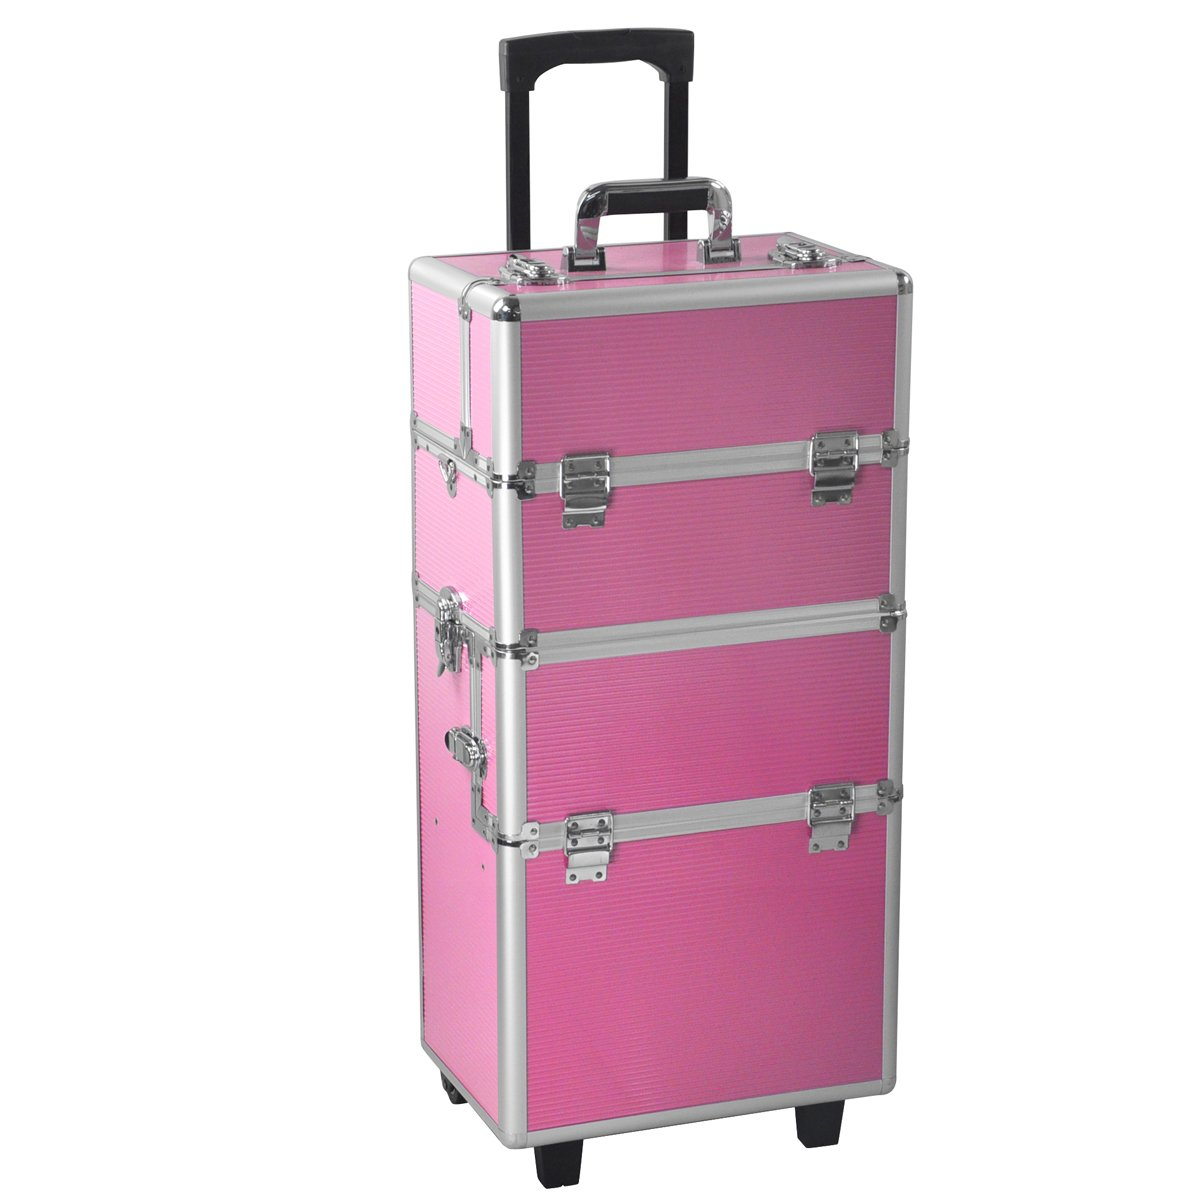 Yaheetech Multicolor Professional 2 in 1 Makeup Beauty Case Cosmetics Technician Case Trolley (Pink)